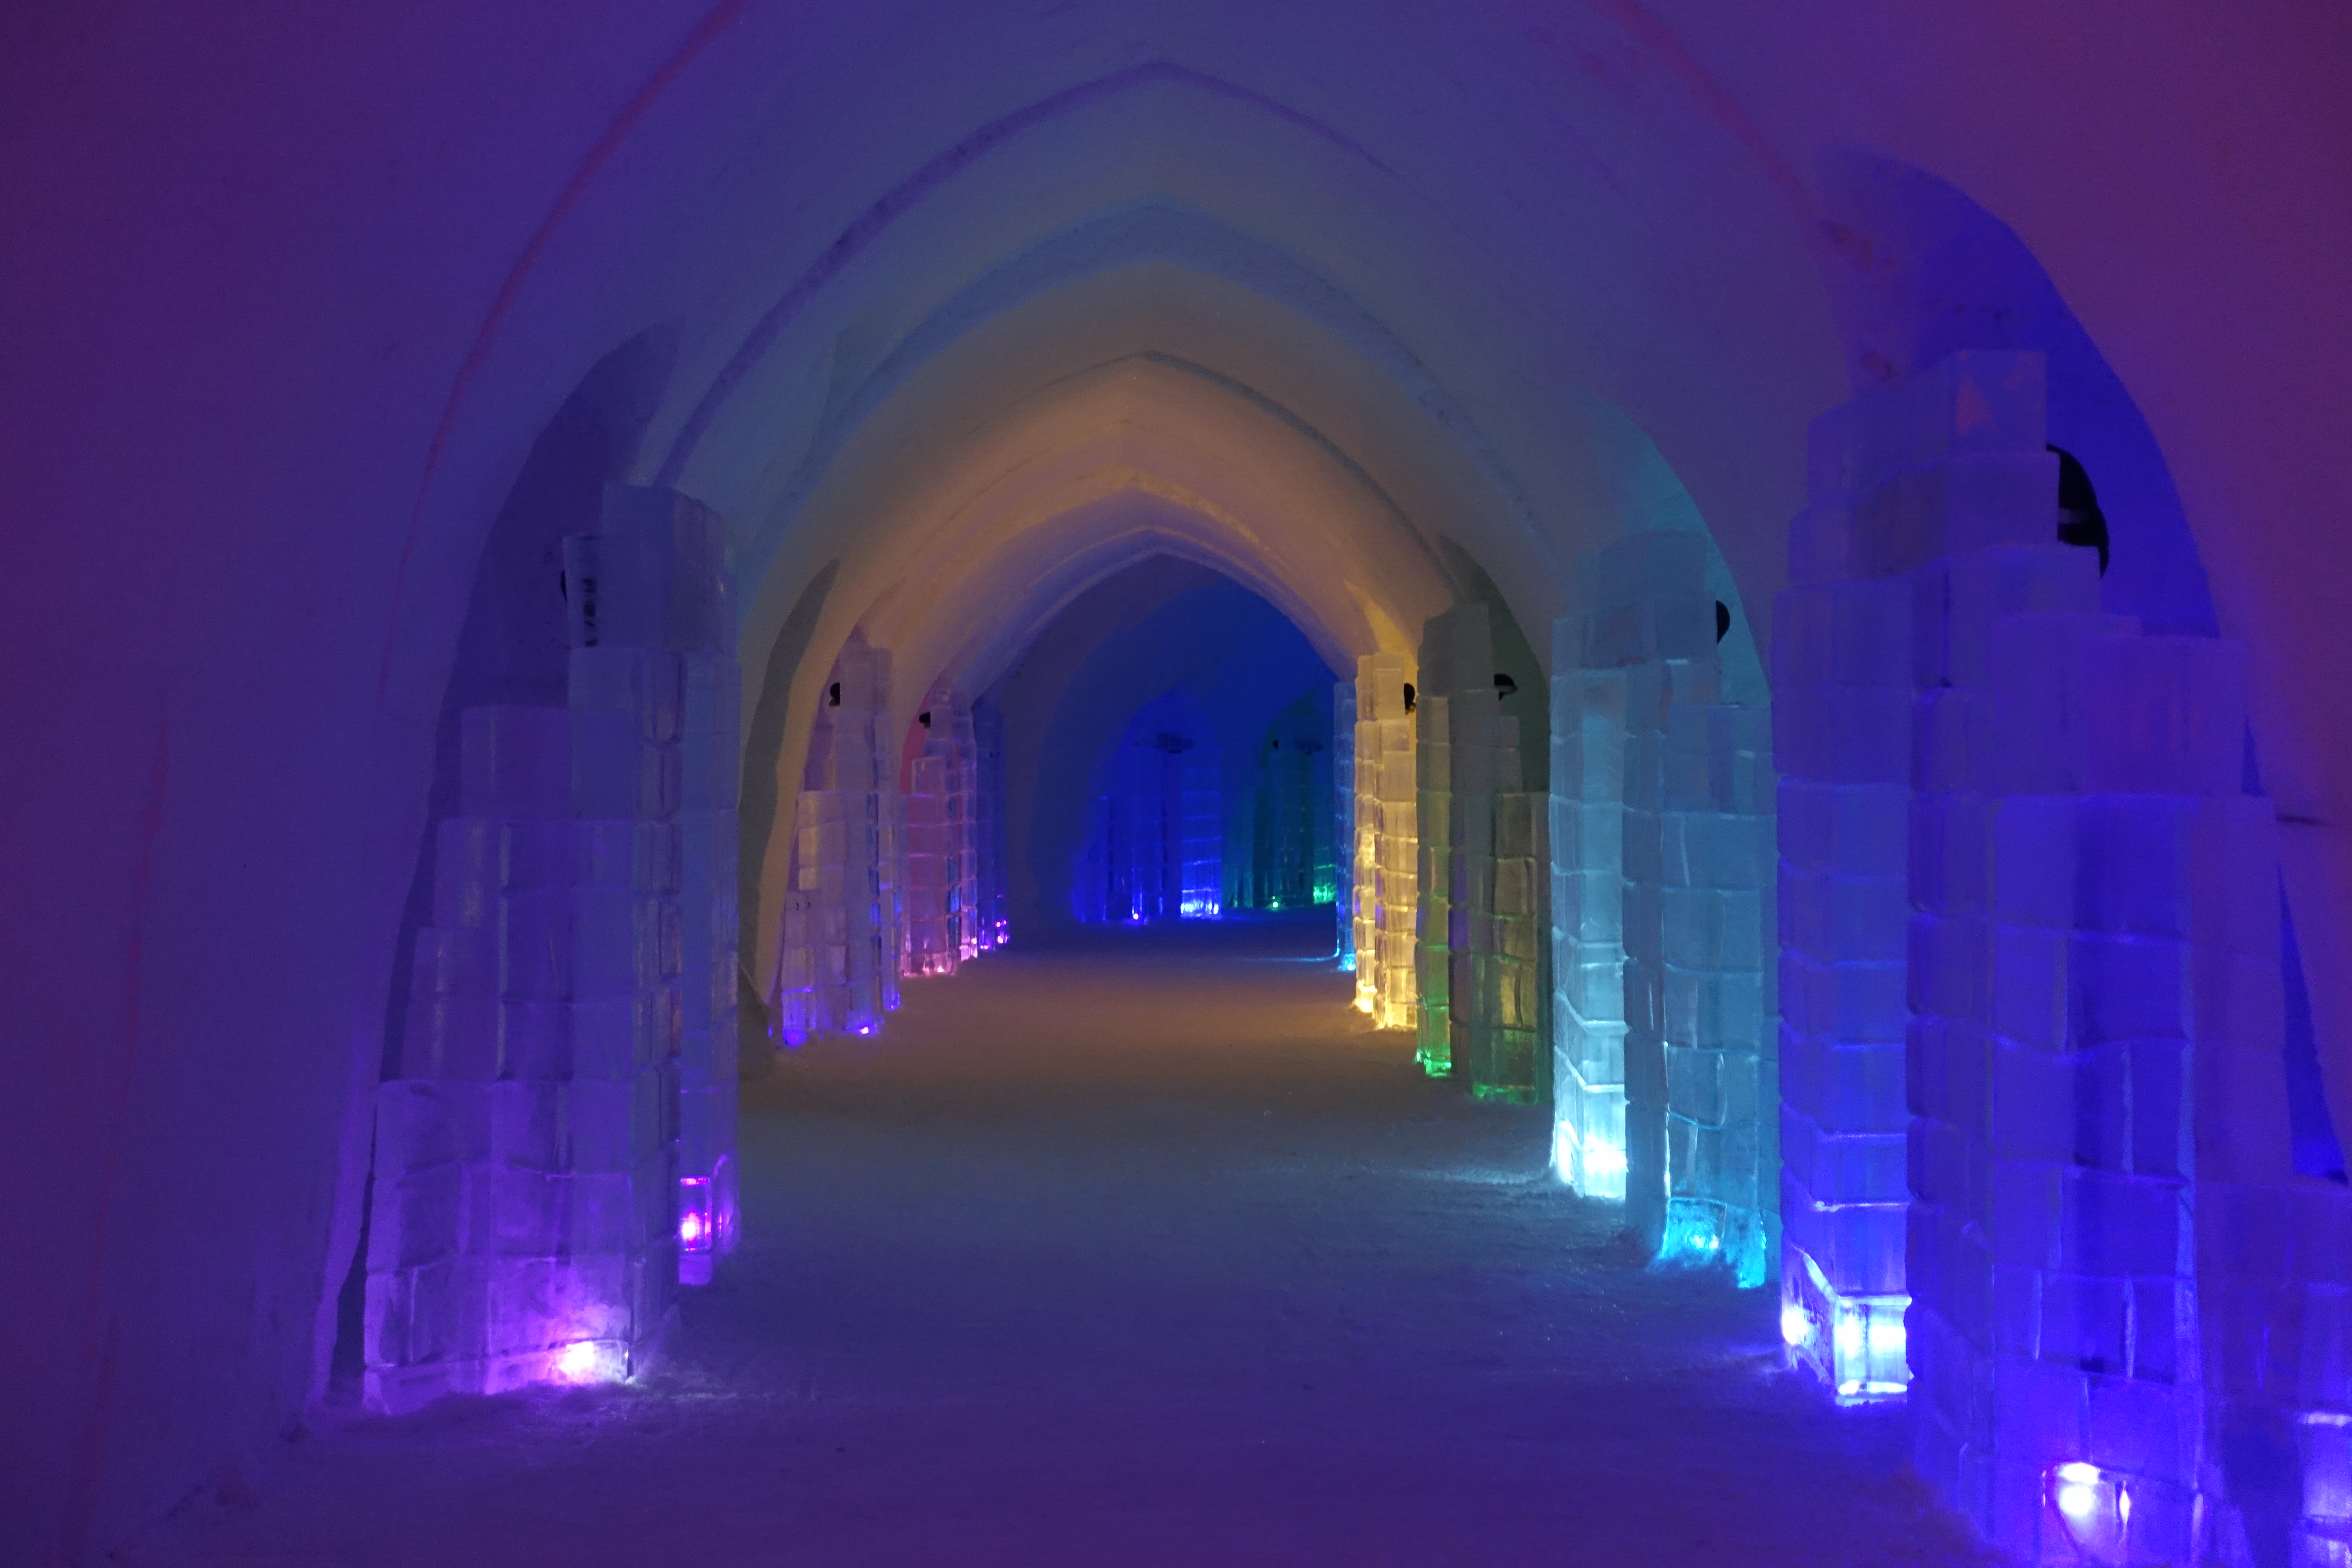 You will be greeted by more ice sculptures as you walk down this hallway.